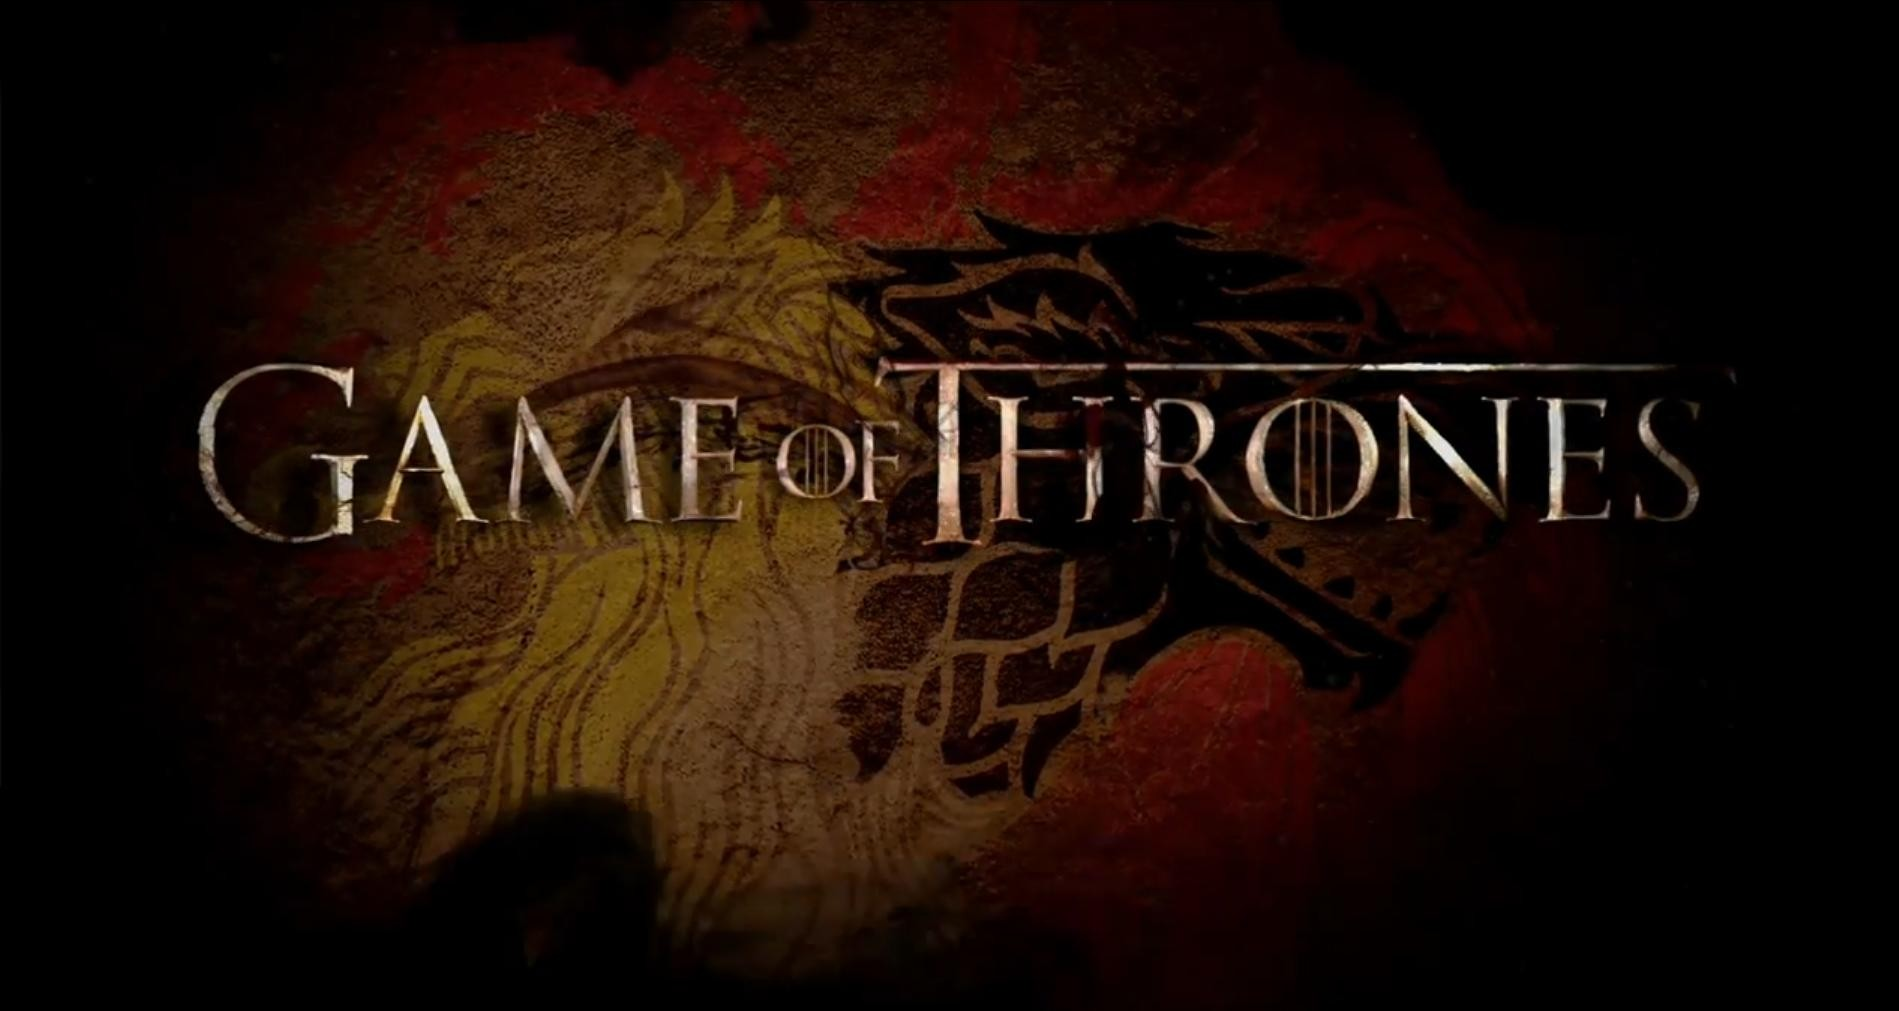 Game of Thrones Season 5 Wallpaper